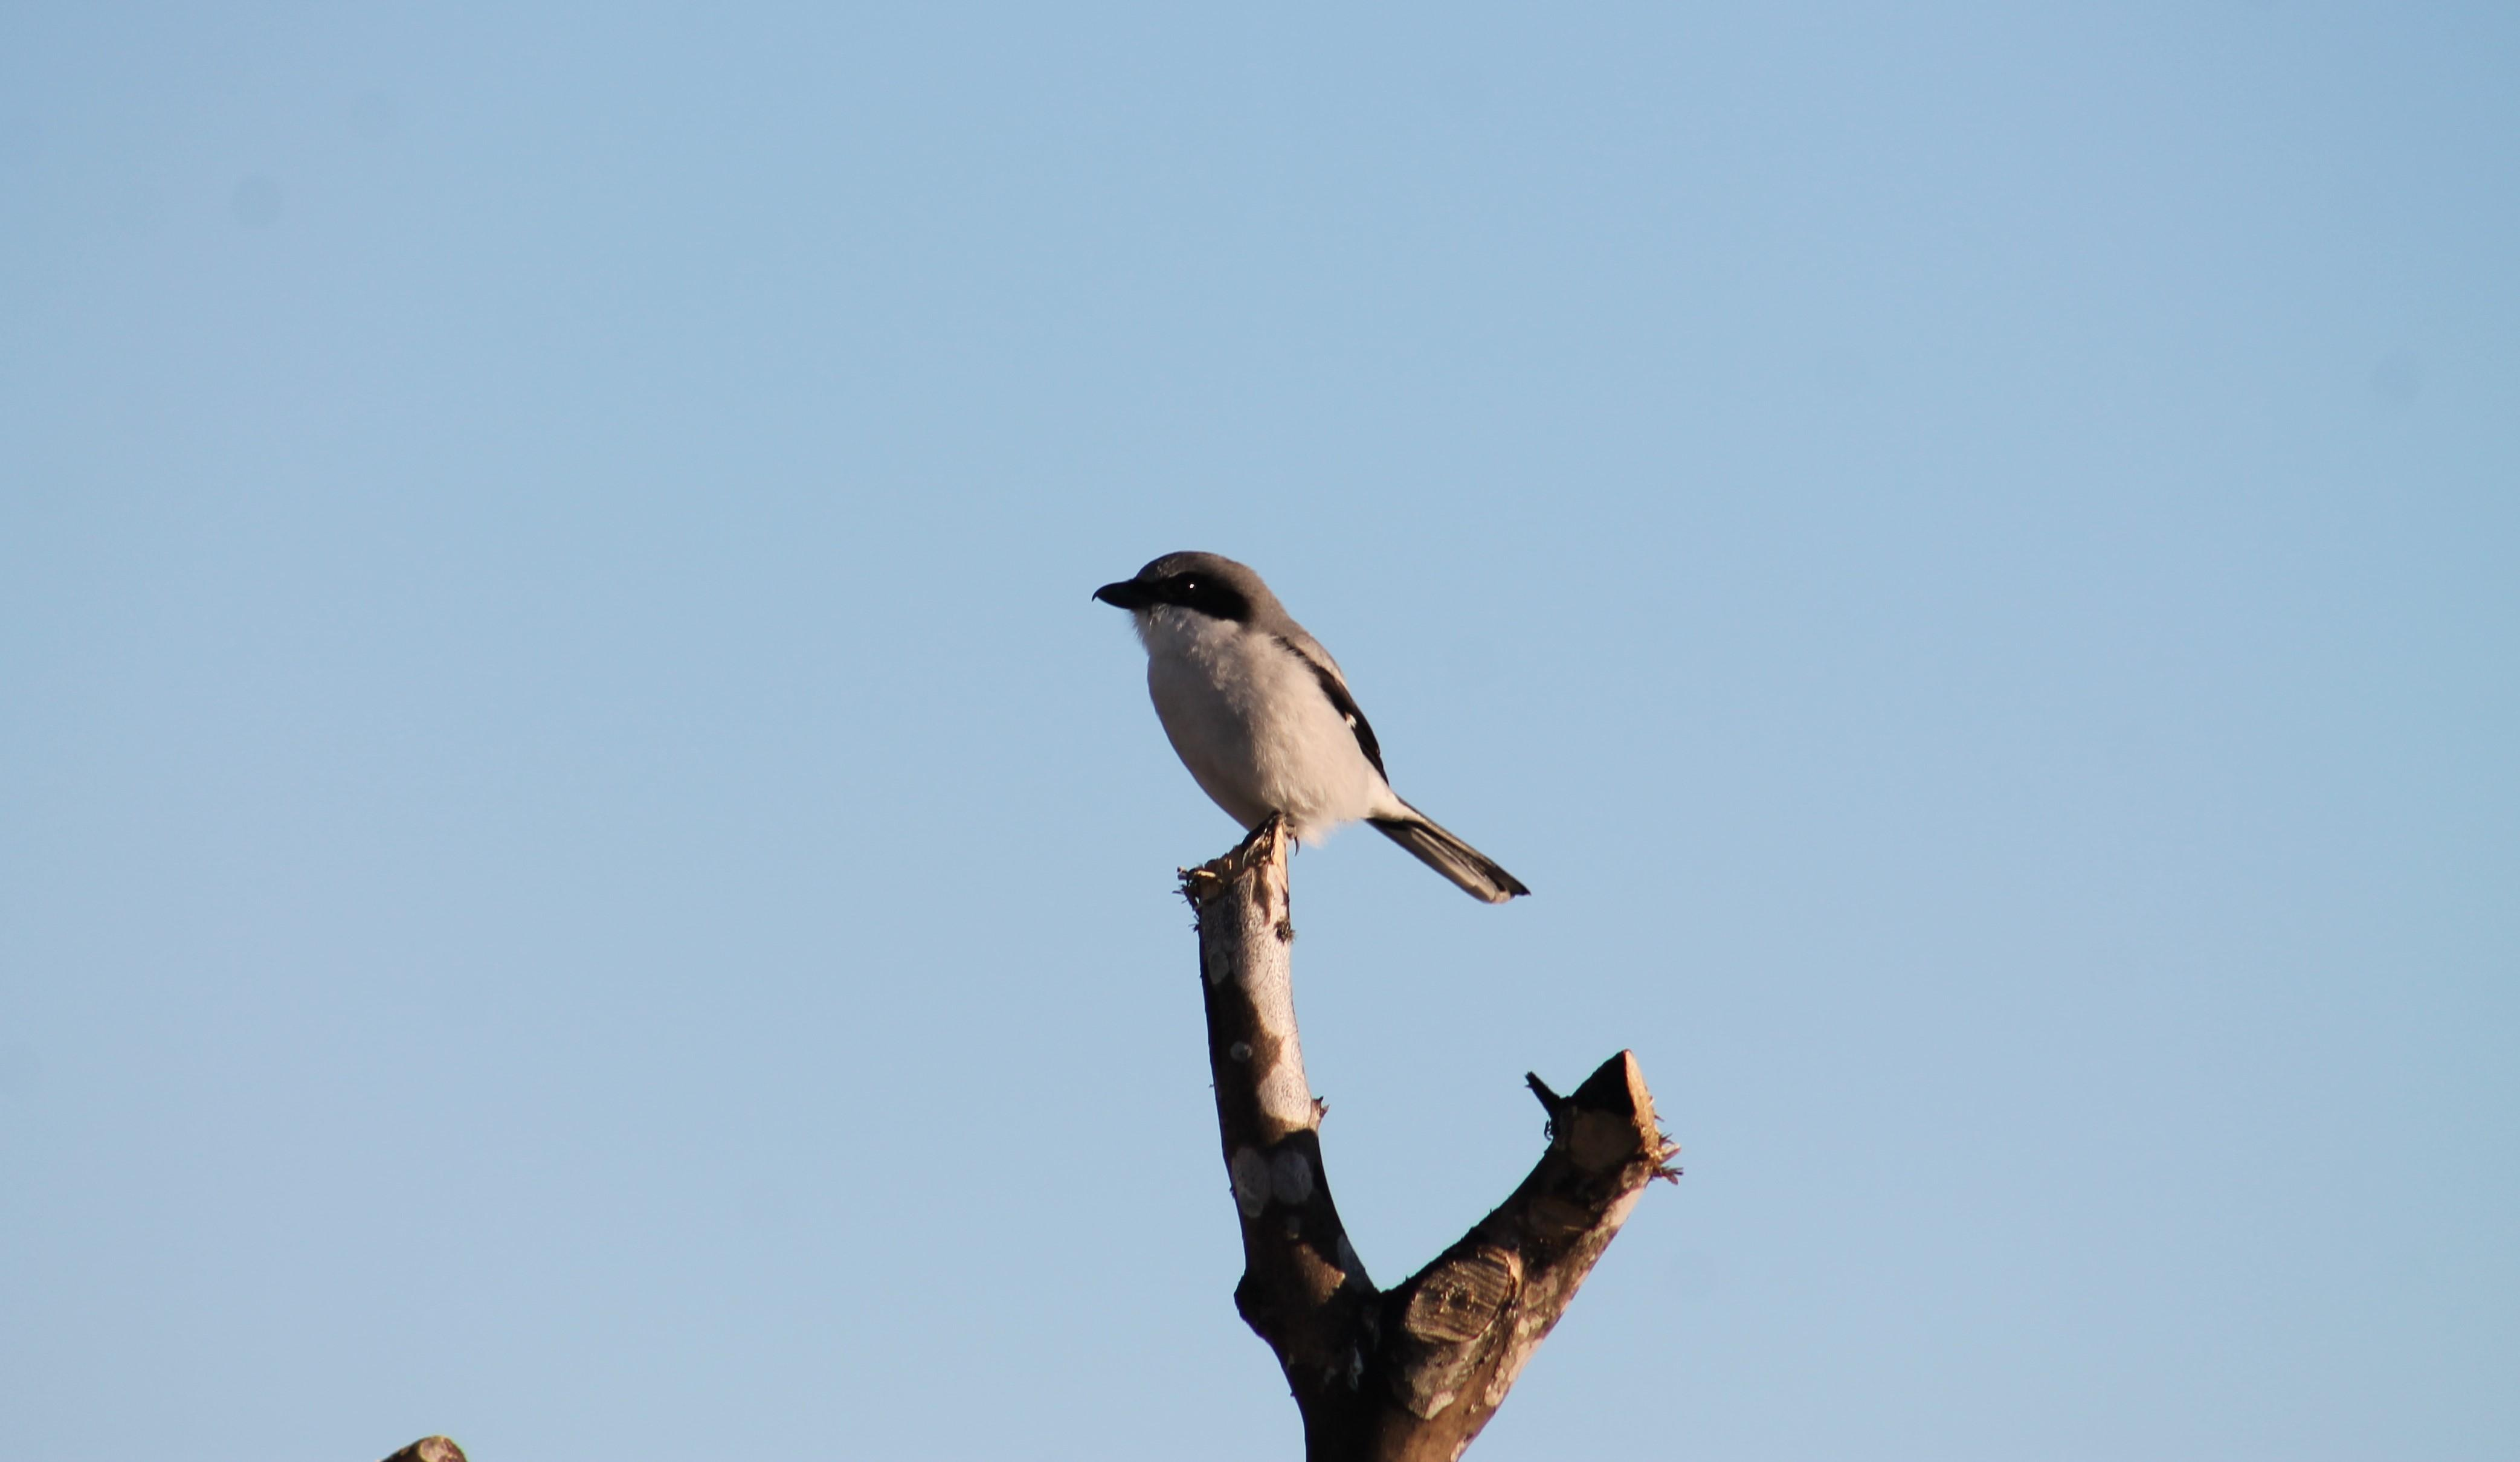 Loggerhead Shrike Perched on a Tree. Photo by Farren Dell